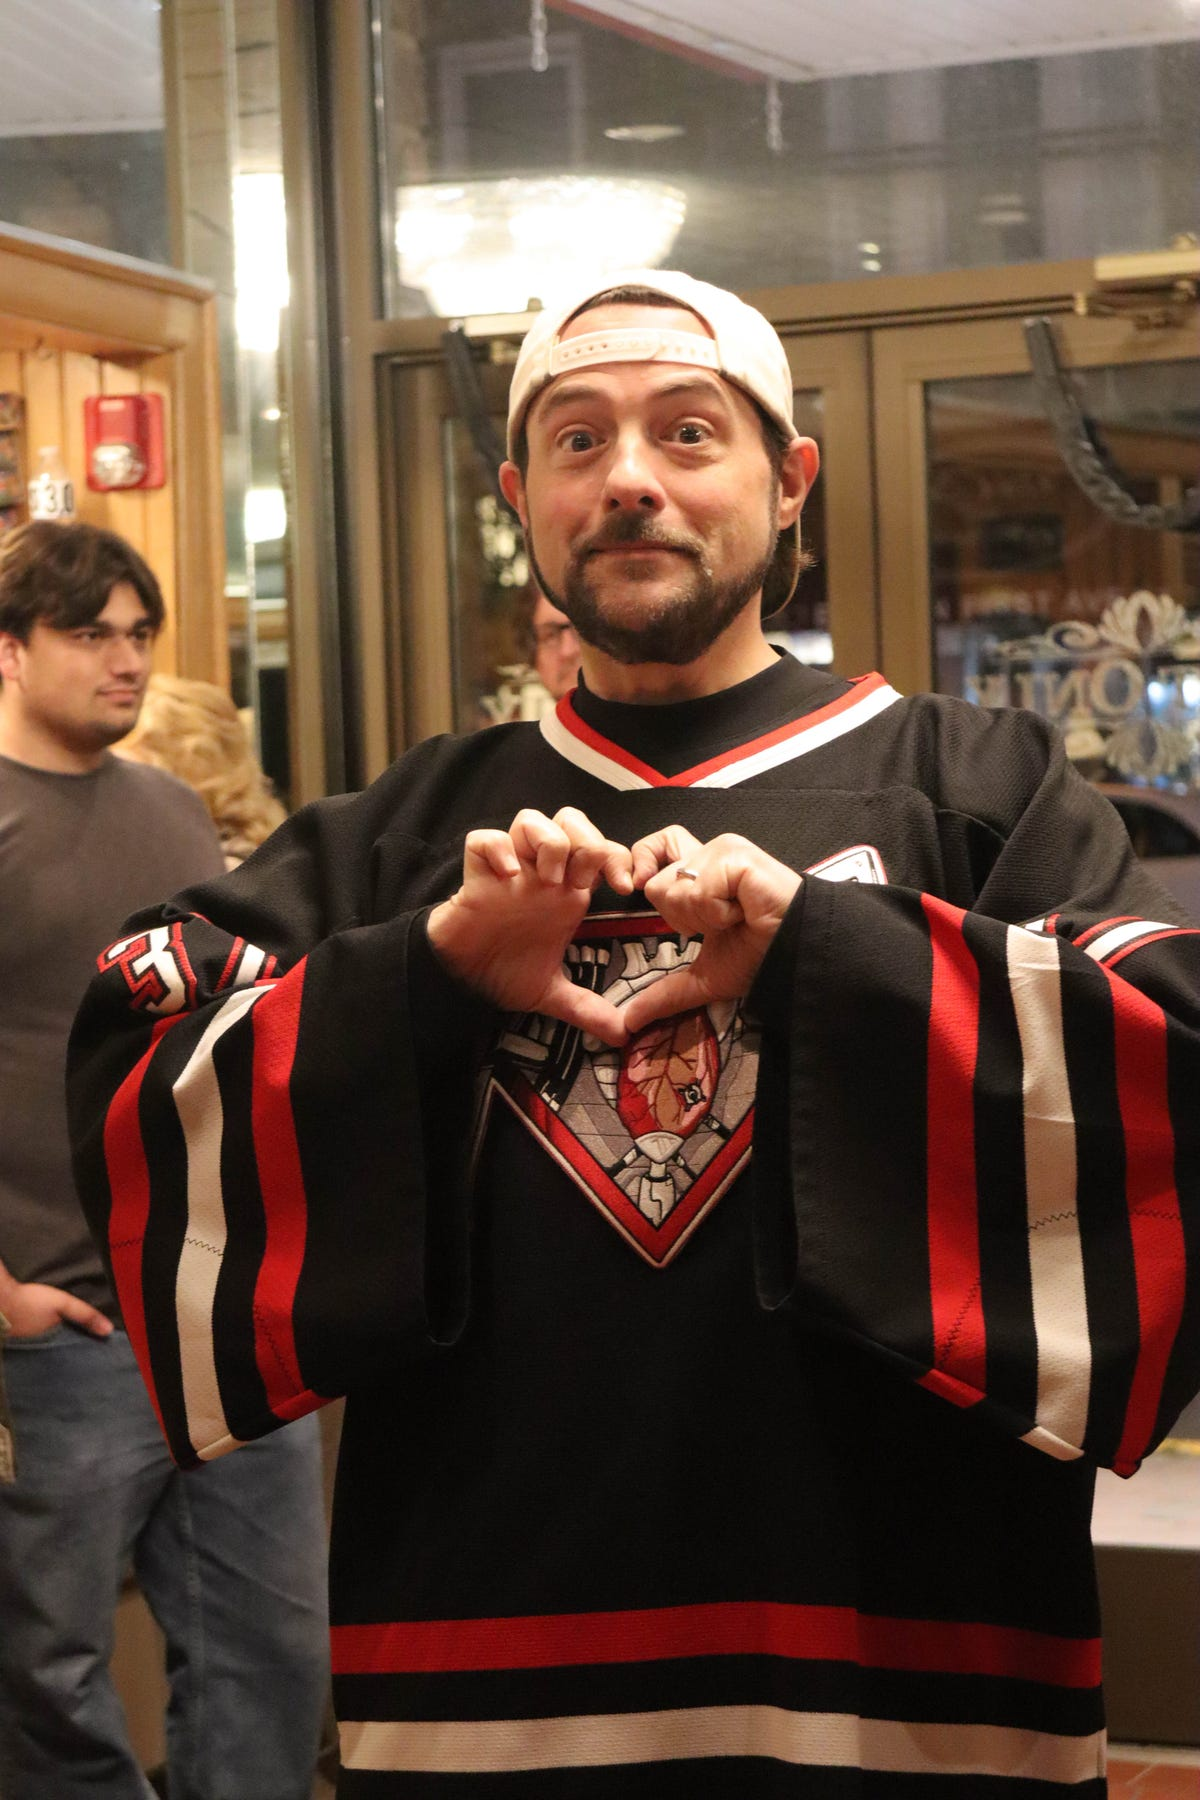 Kevin Smith on his weight loss story, vegan lifestyle